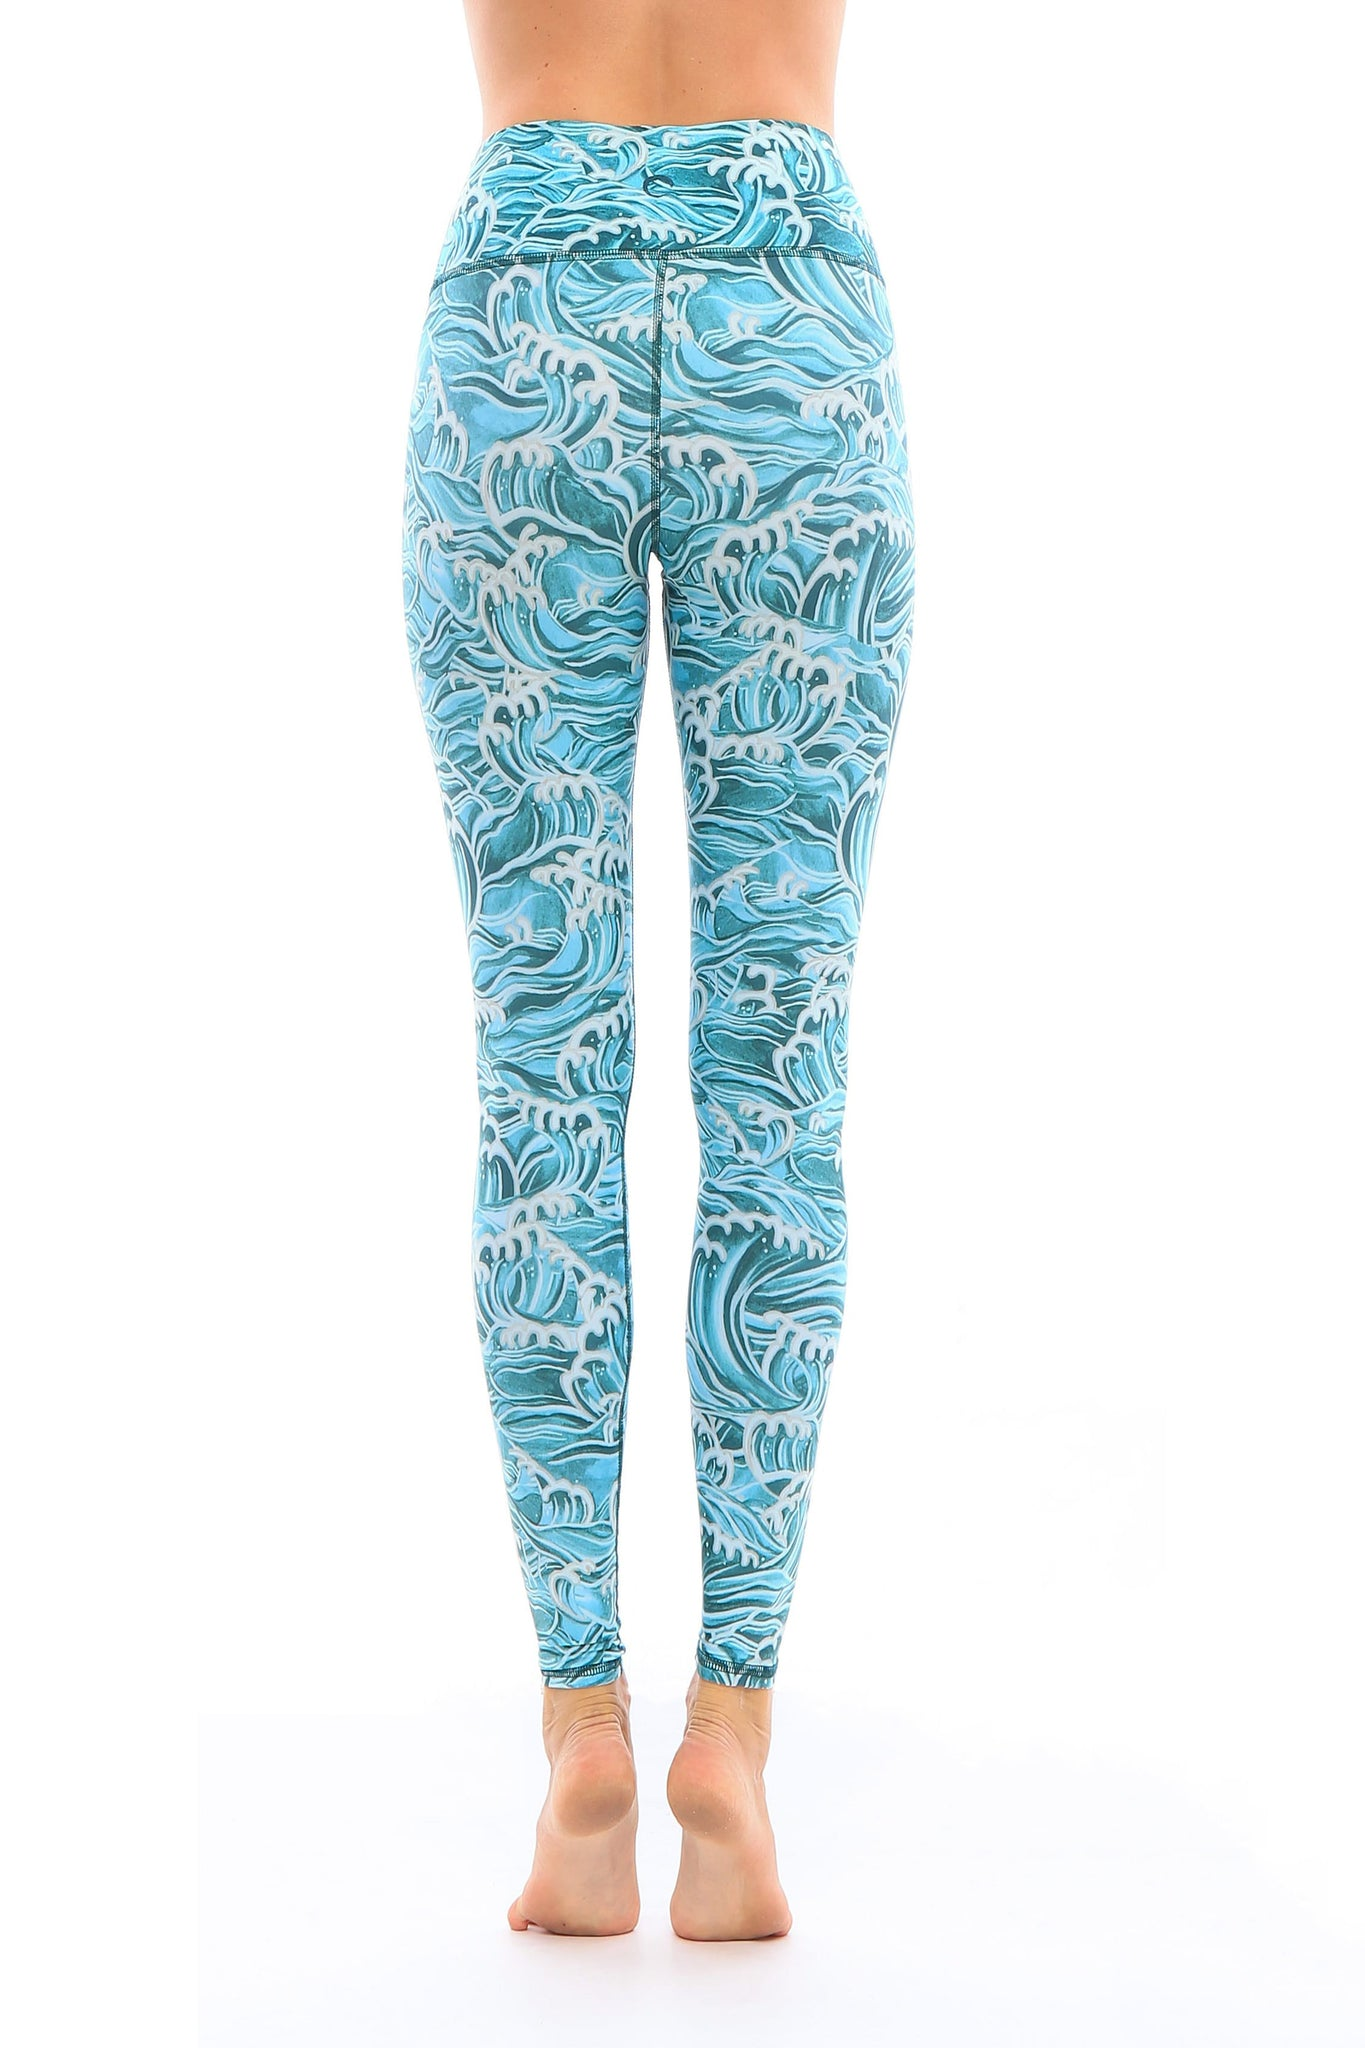 Fiji Waves Leggings